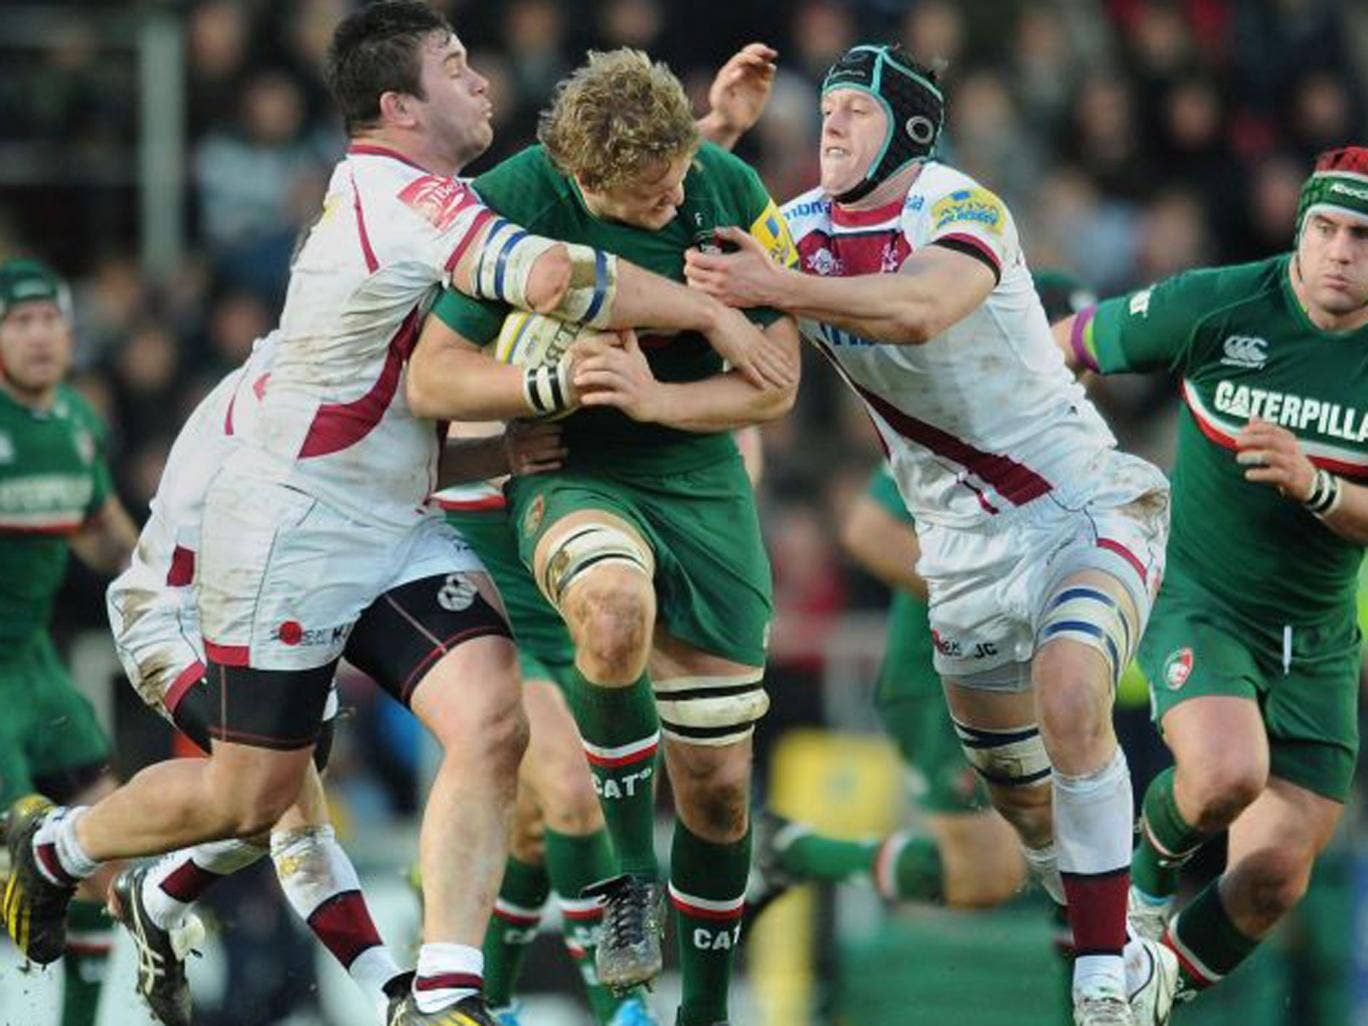 Leicester Tigers' Jamie Gibson is tackled by Sale Sharks' Marc Jones